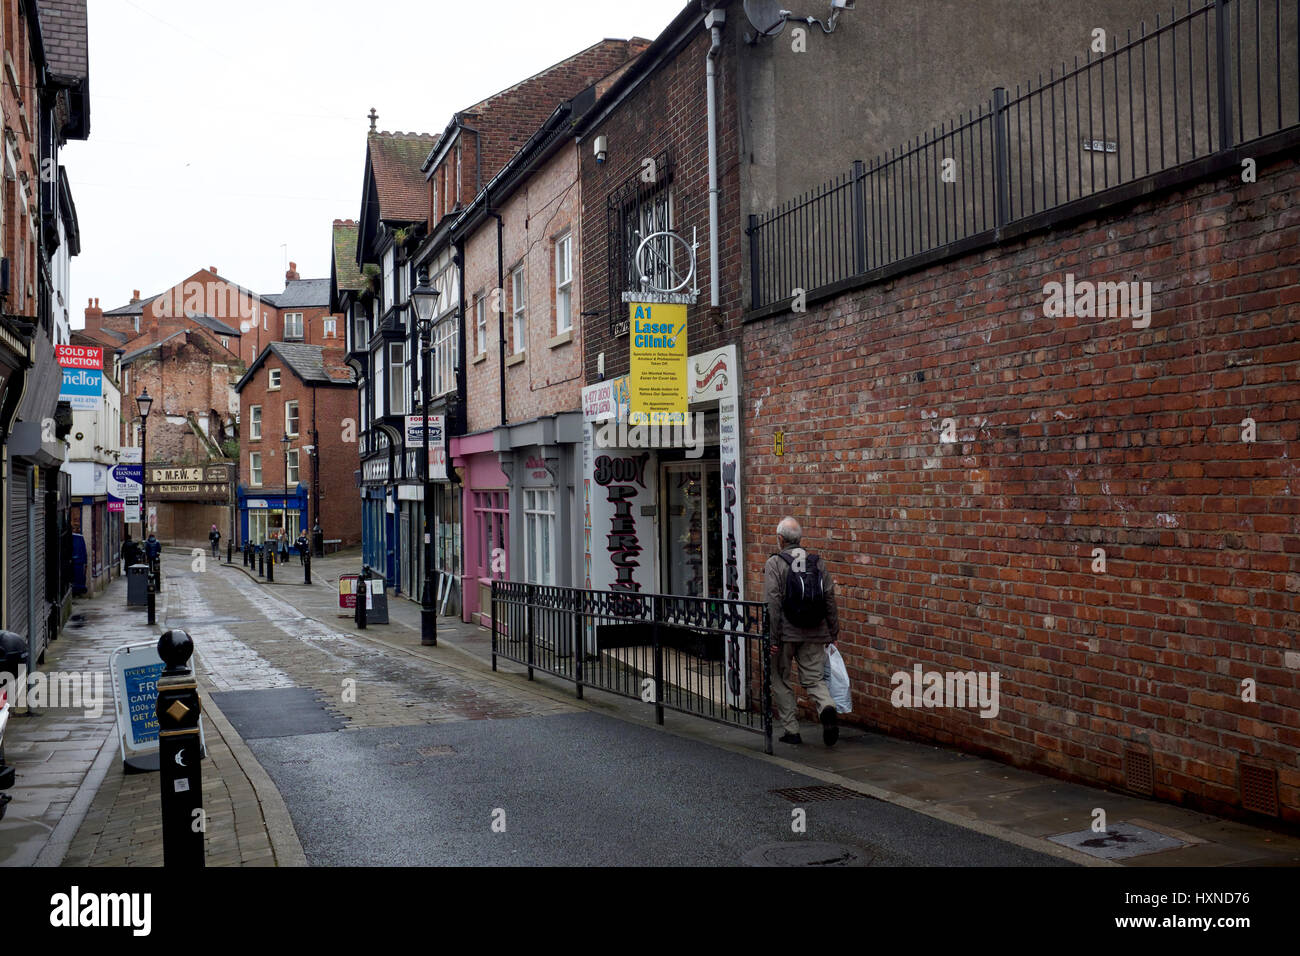 A dilapidated street in Stockport, Greater Manchester - Stock Image